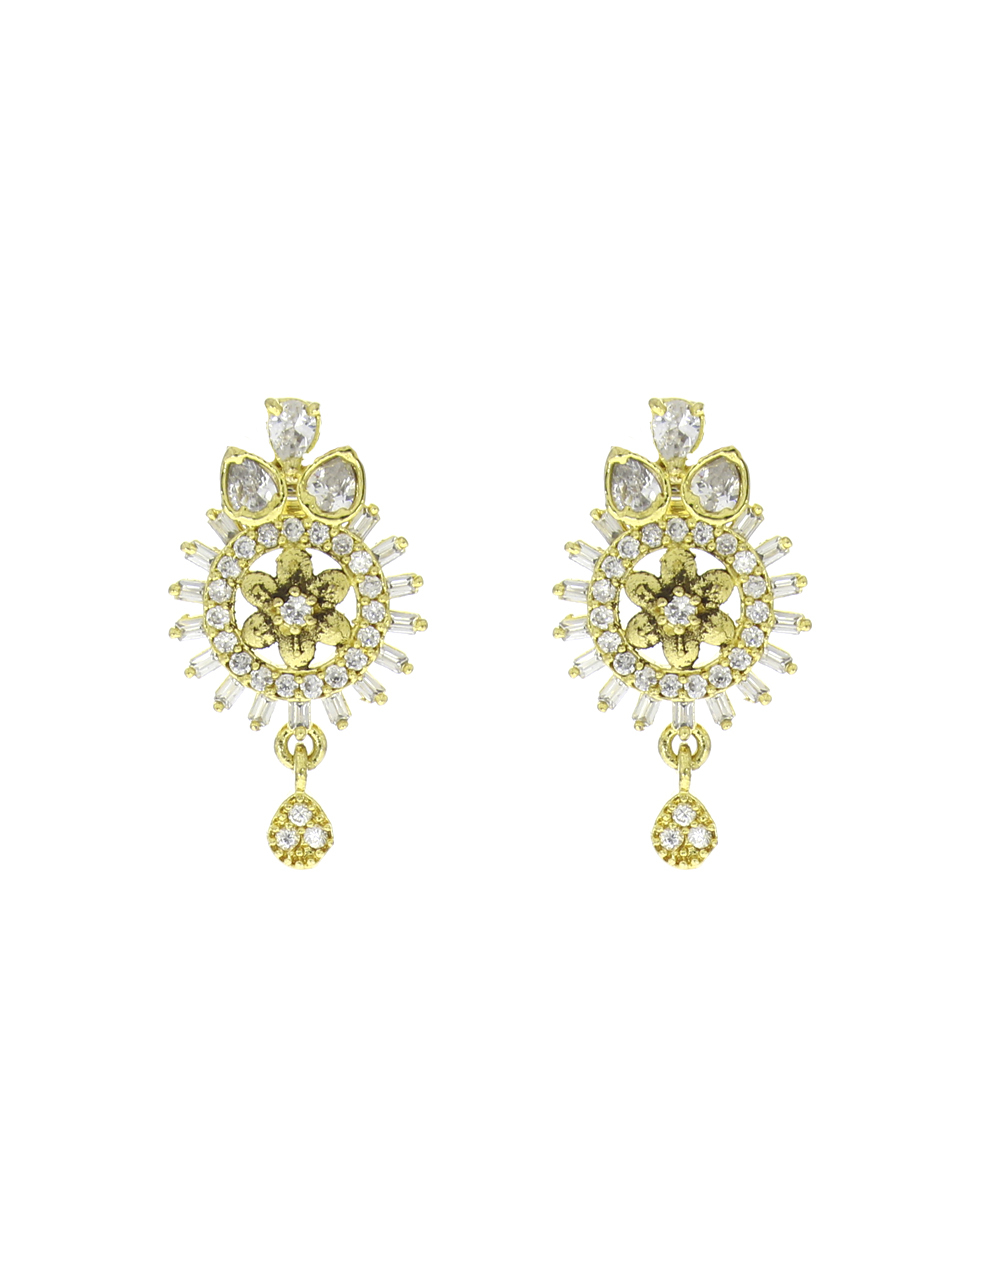 Gold Tone Adorable Classy Traditional Pendant Set For Women & Girls